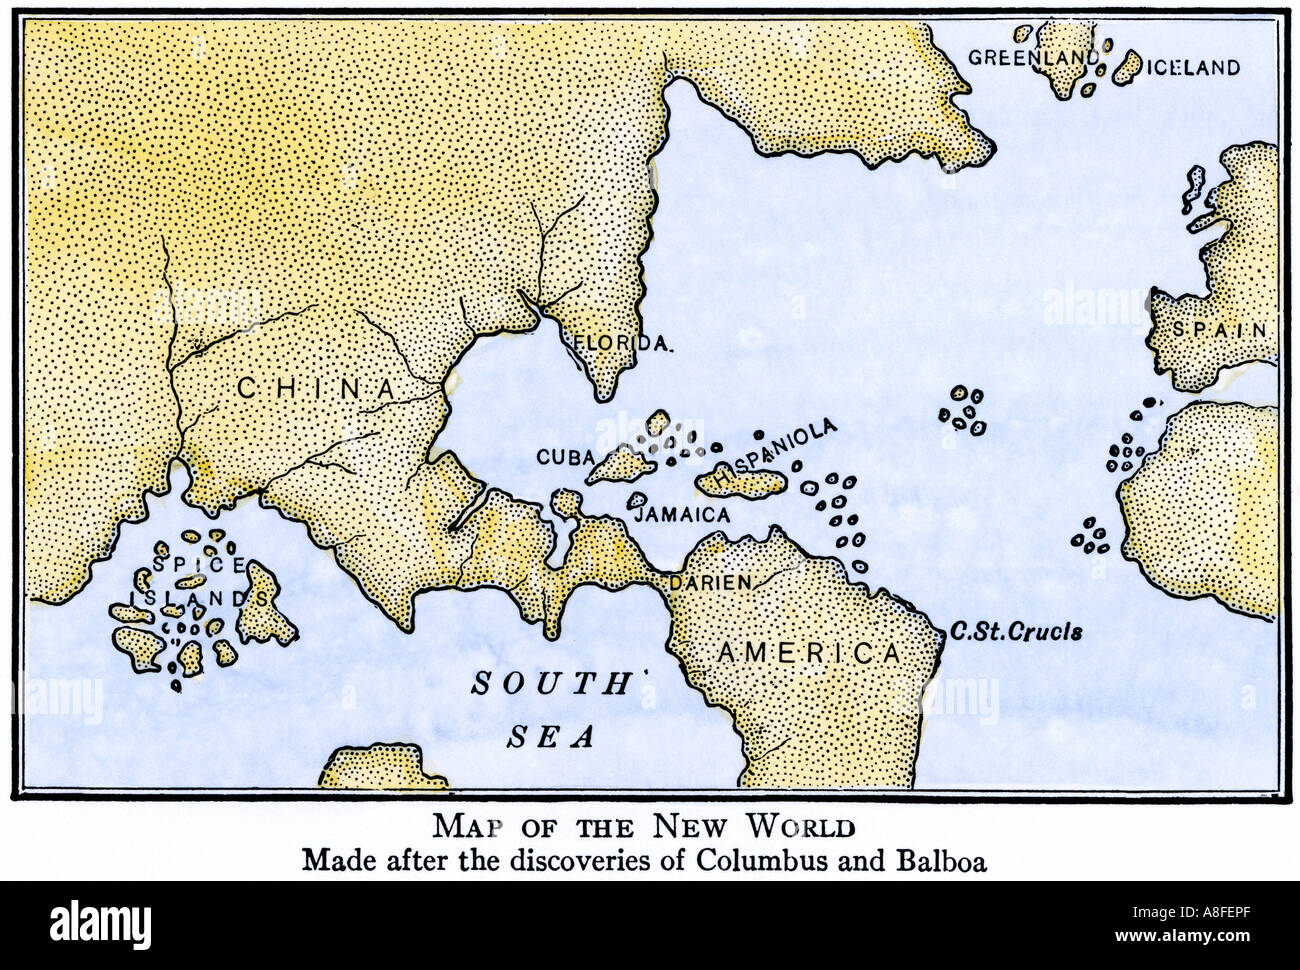 New world map showing south america attached to asia as assumed new world map showing south america attached to asia as assumed after the disoveries of columbus and balboa gumiabroncs Image collections